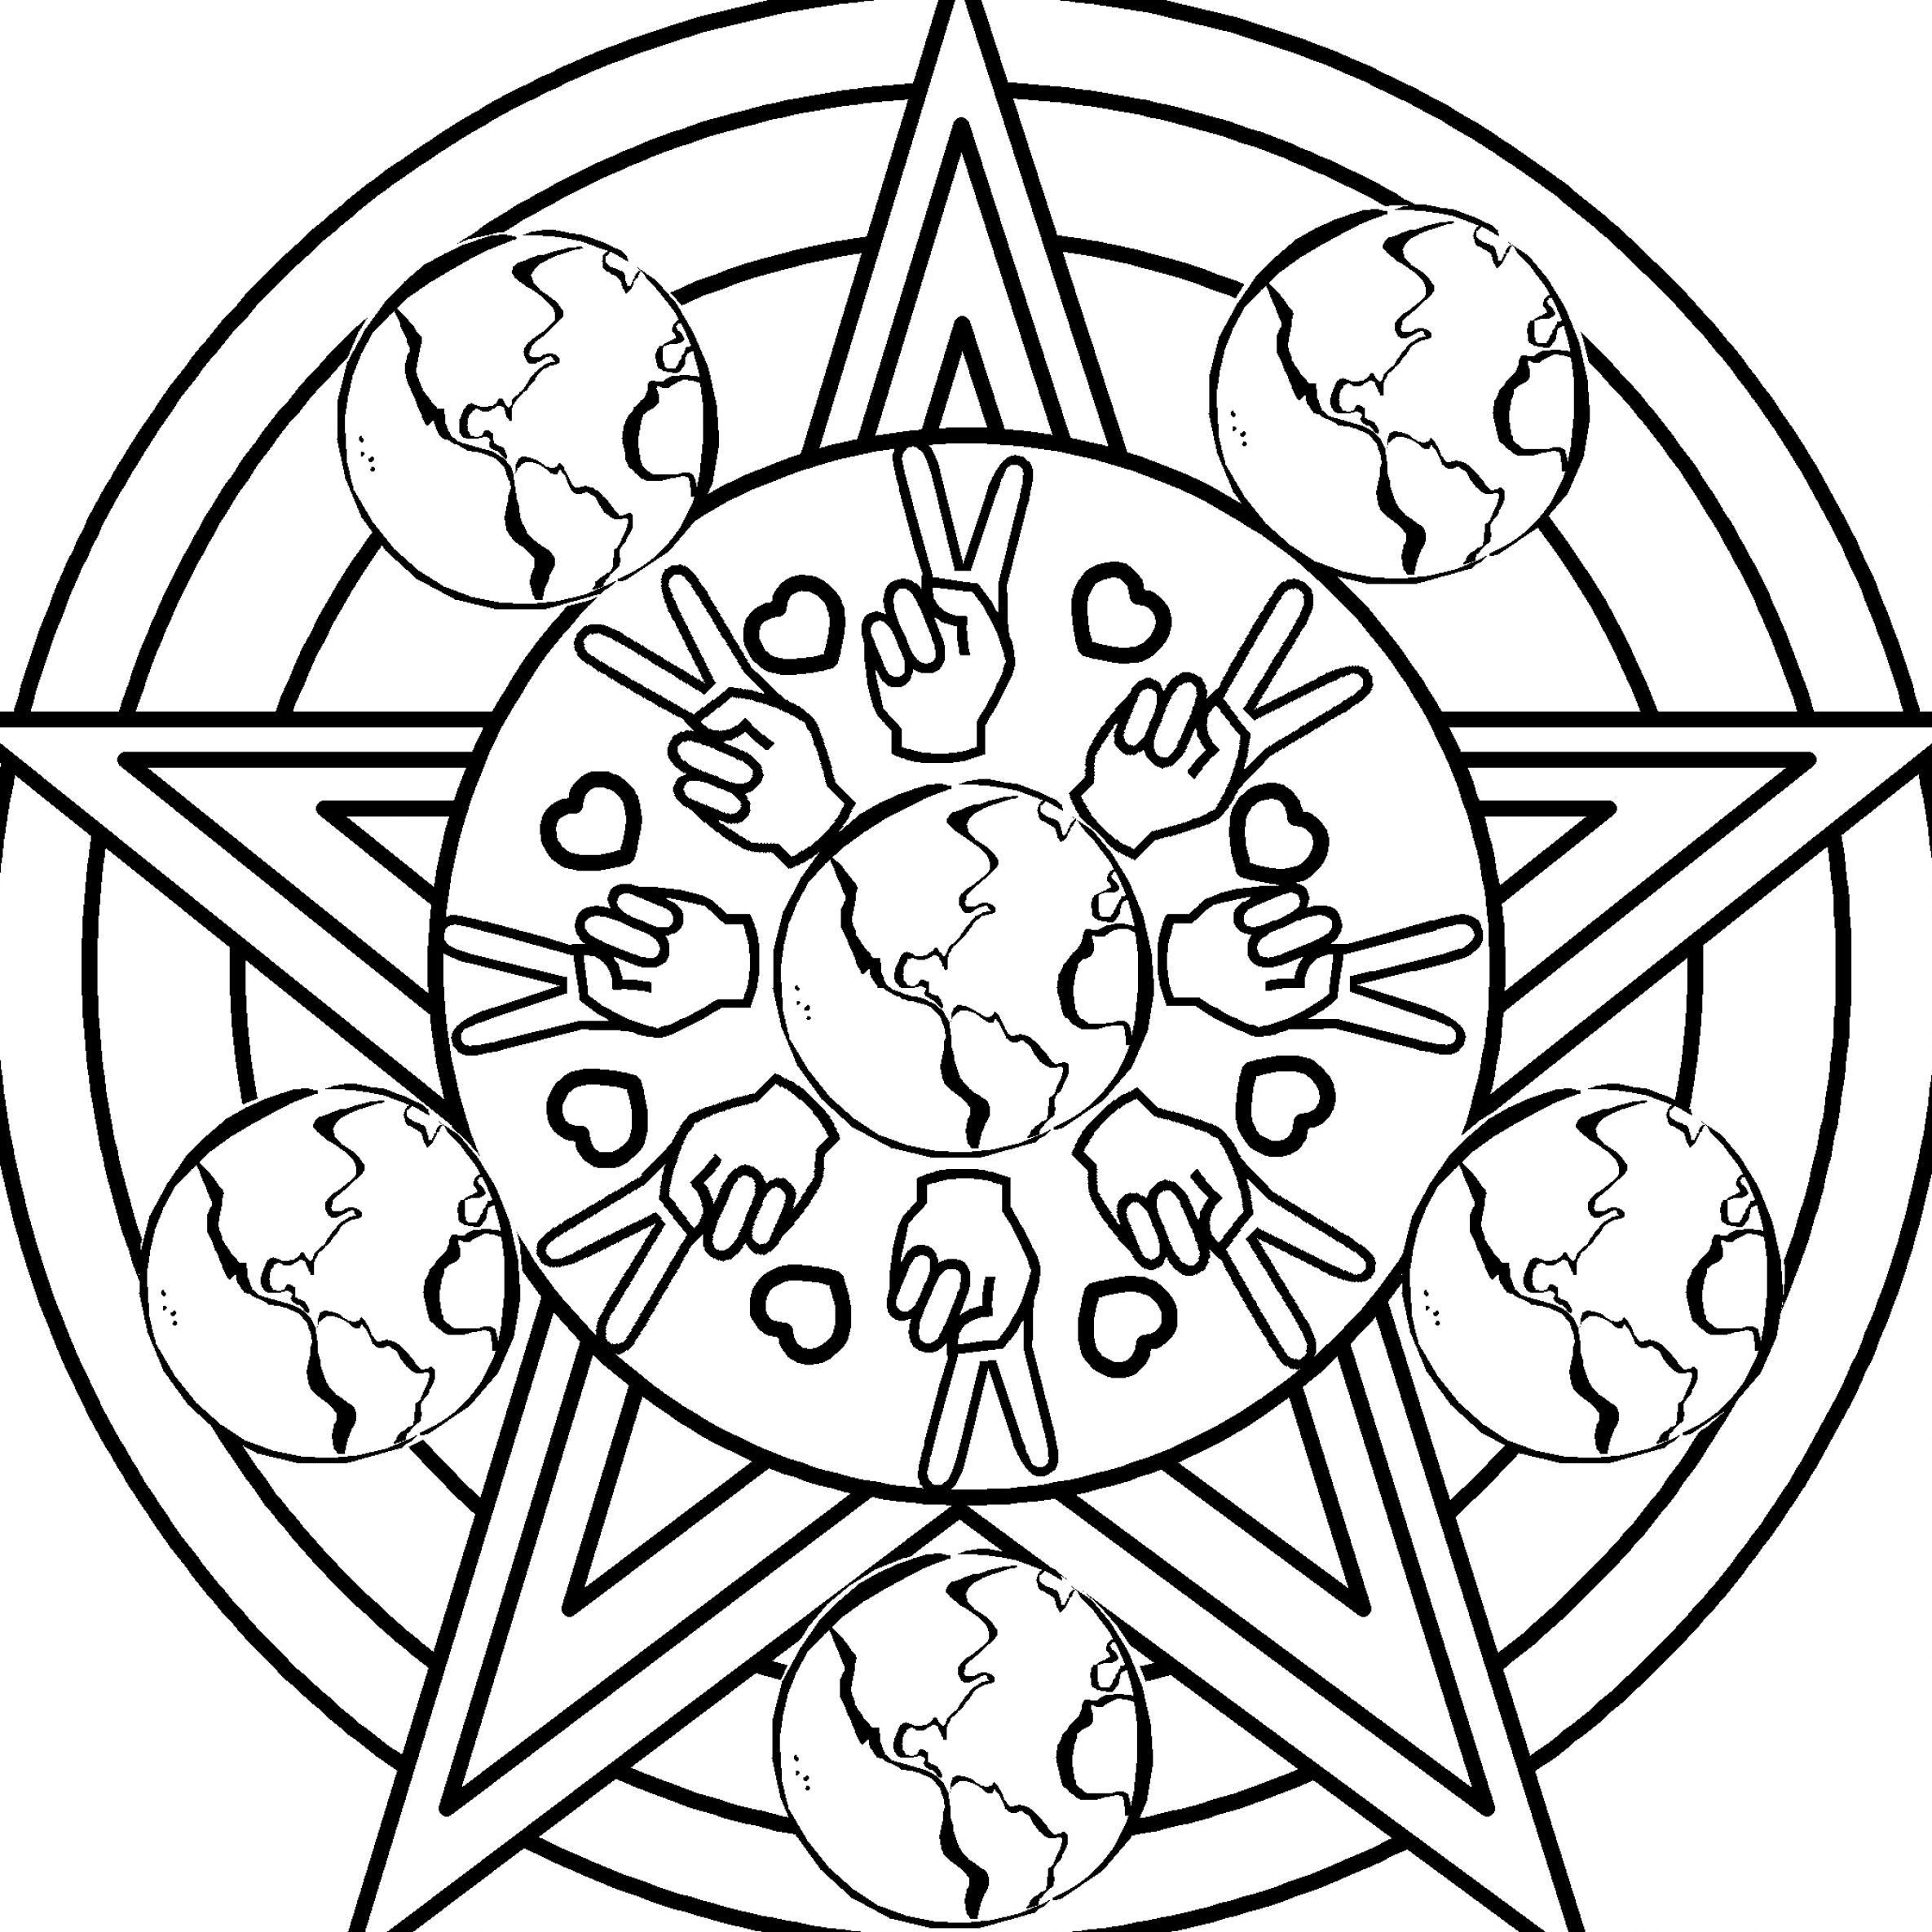 heart peace sign coloring pages - photo#5